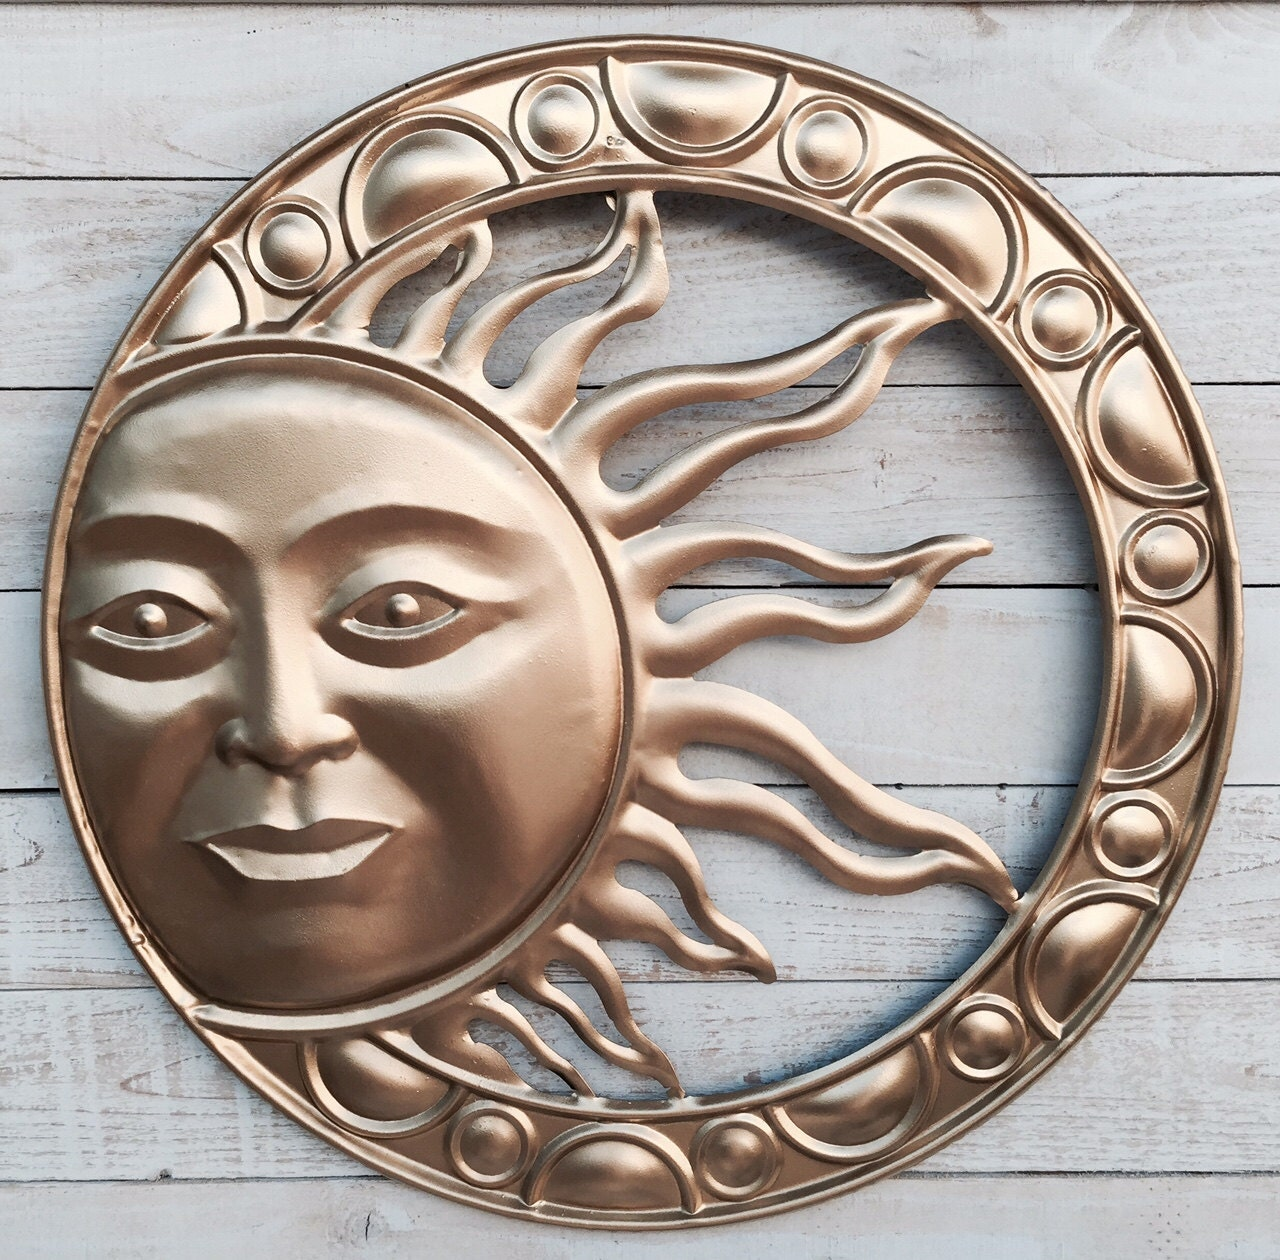 Rustic Outdoor Wall Decor : Sun garden rustic metal wall decor hanging gold by